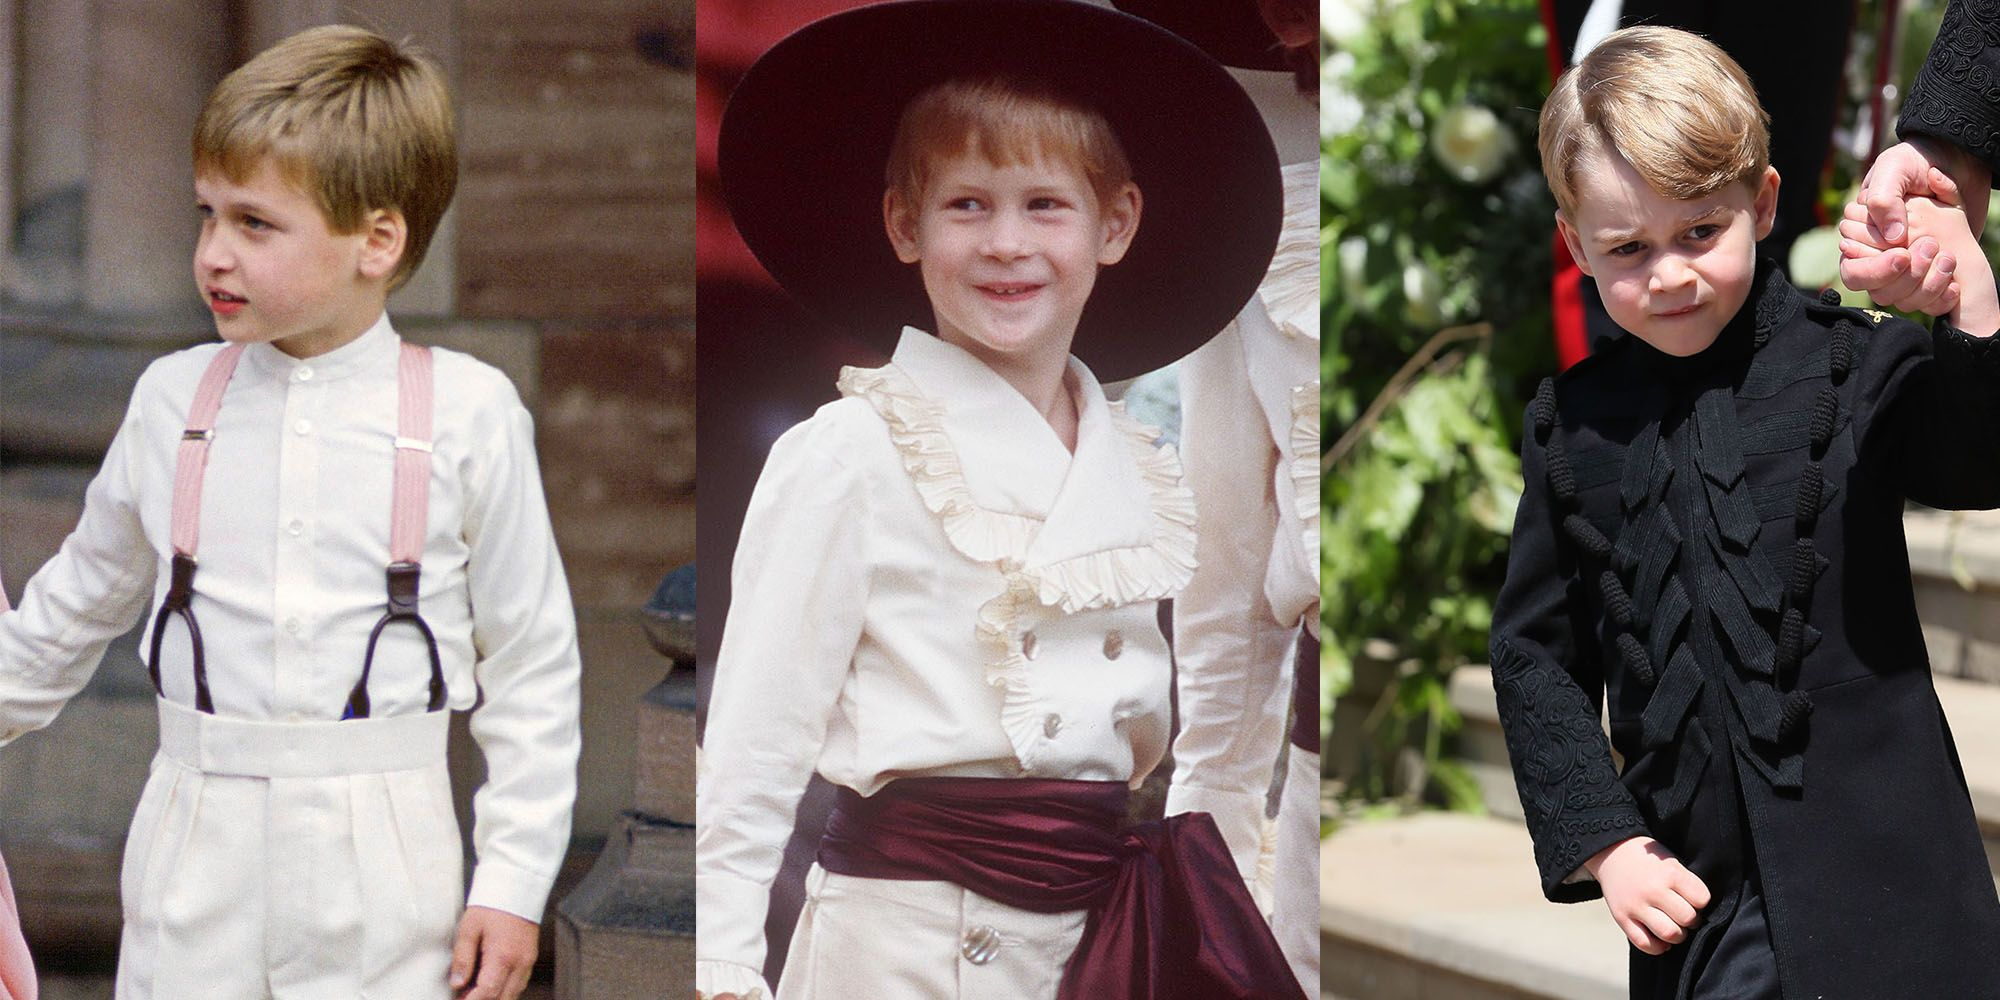 Photos Of William And Harry As Page Boys At Royal Weddings